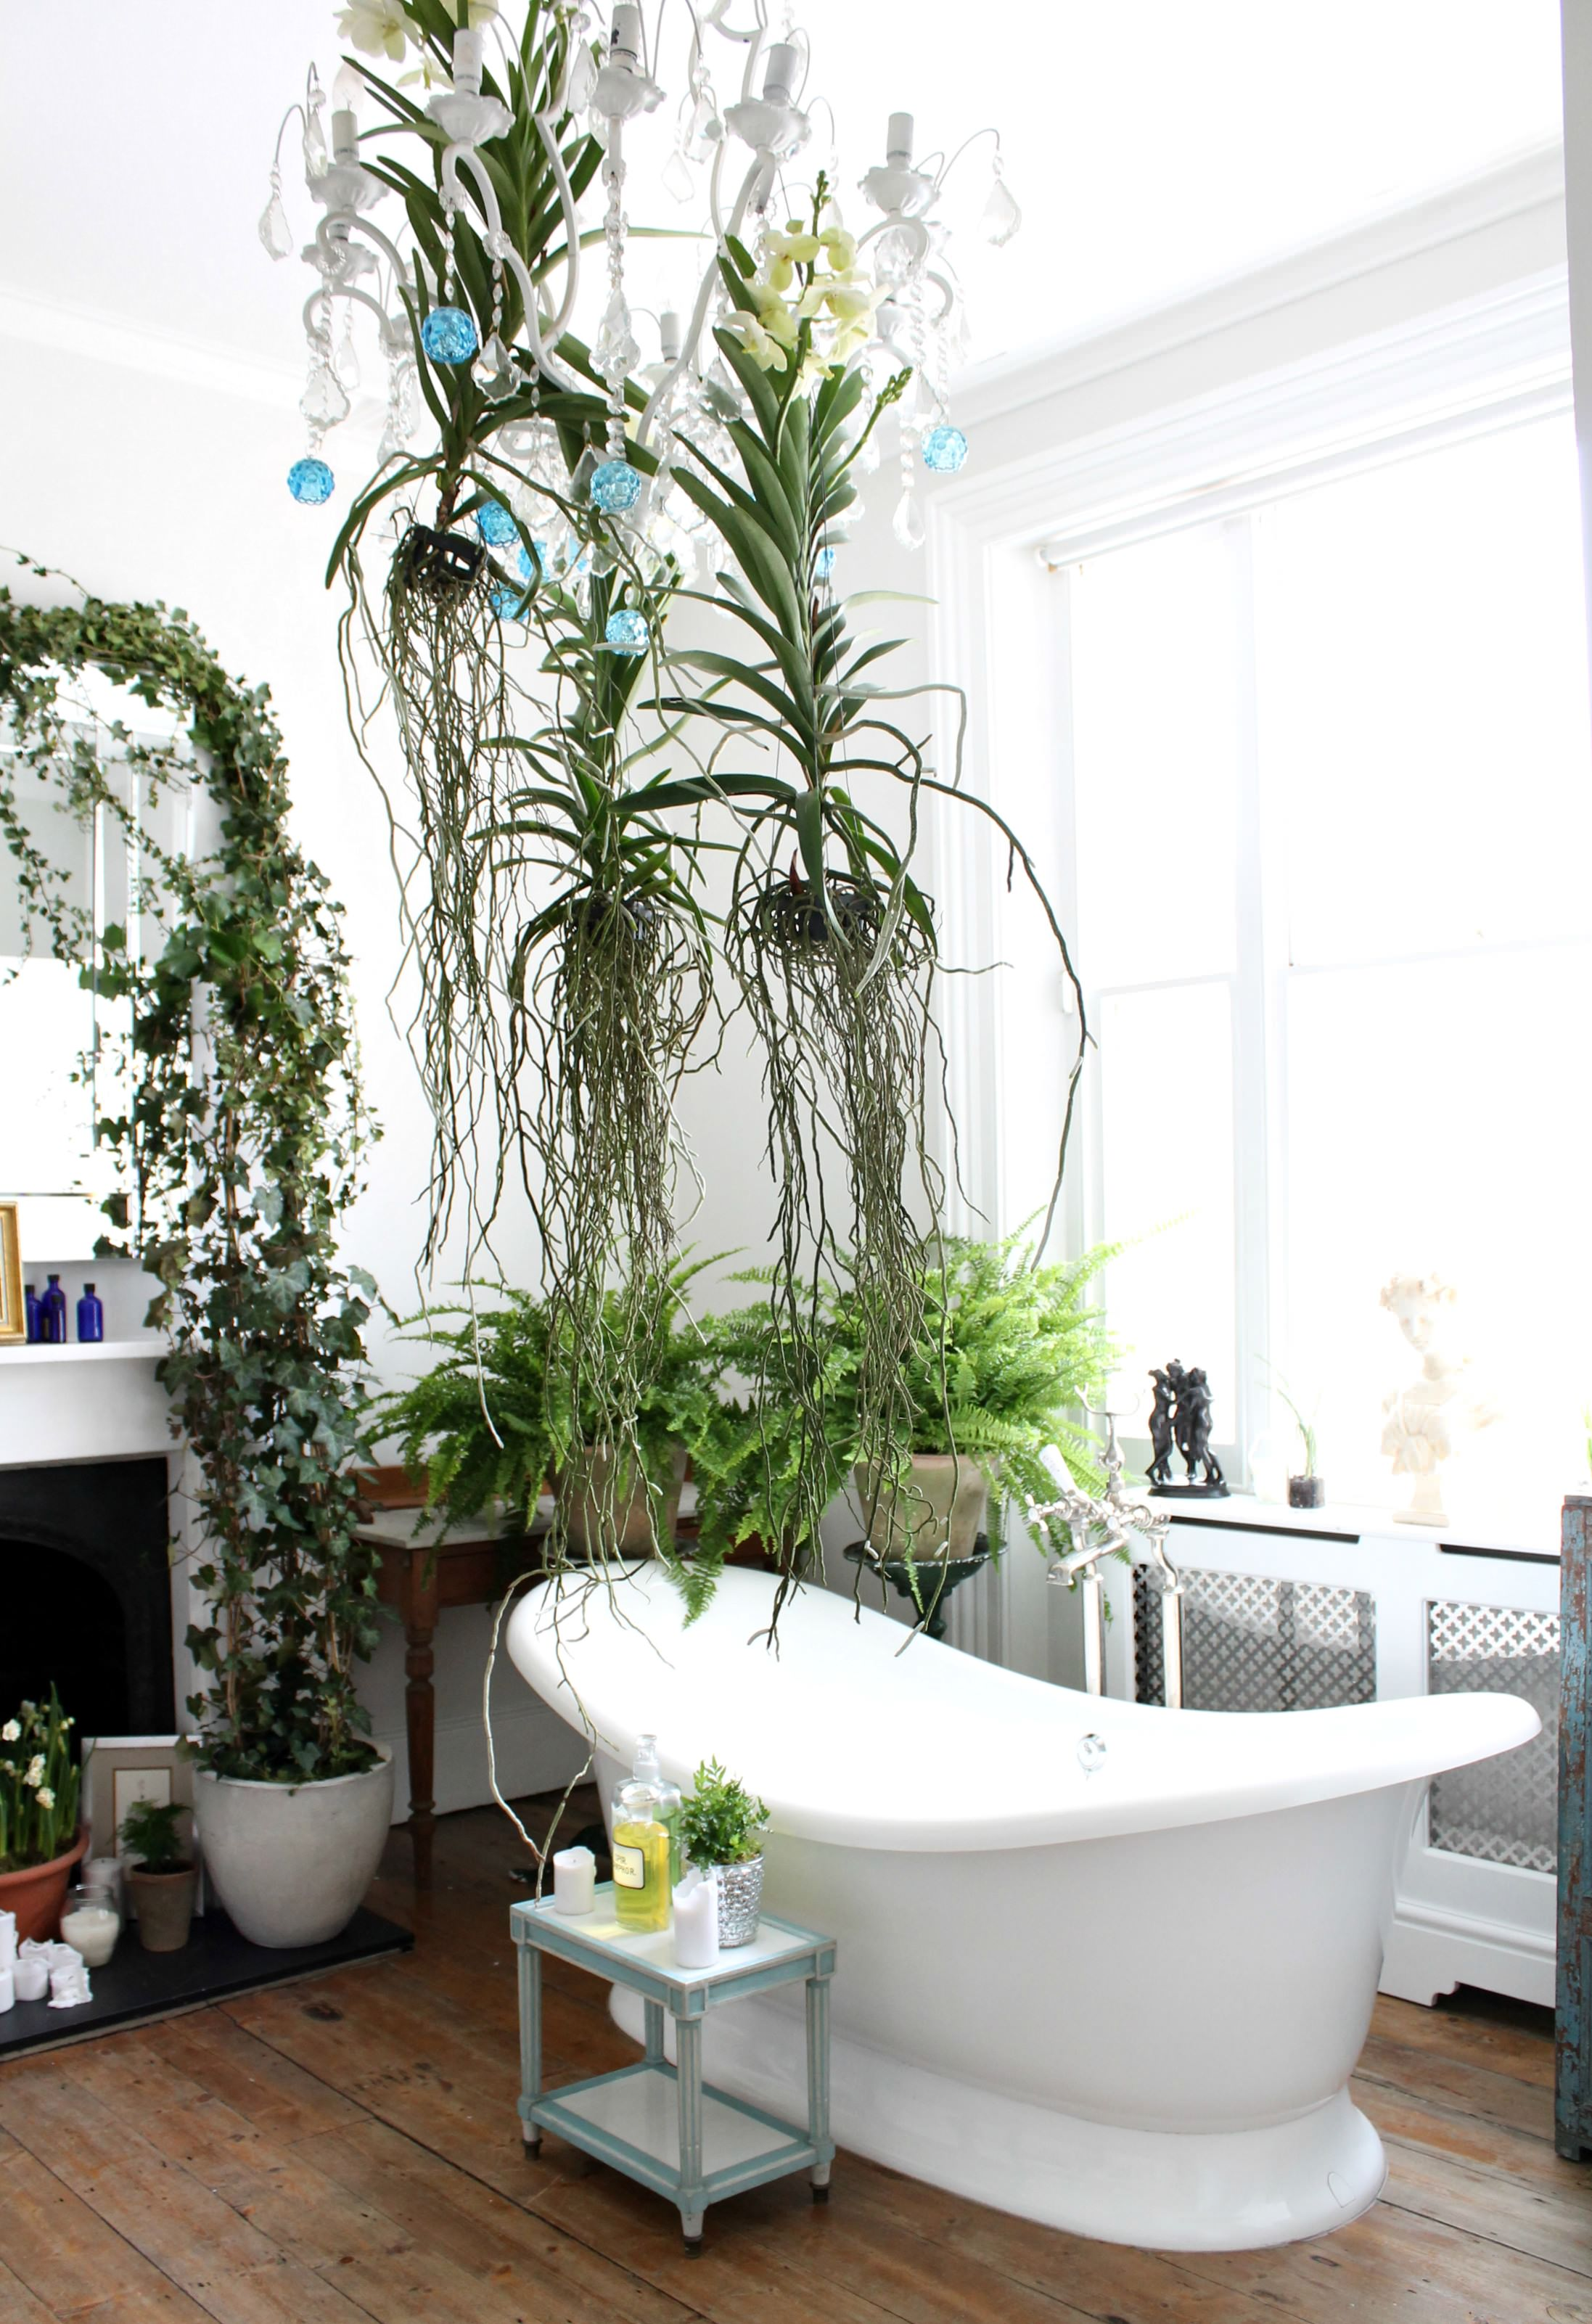 Red Magazine Unexpected Wild Trend Bathroom Photo By